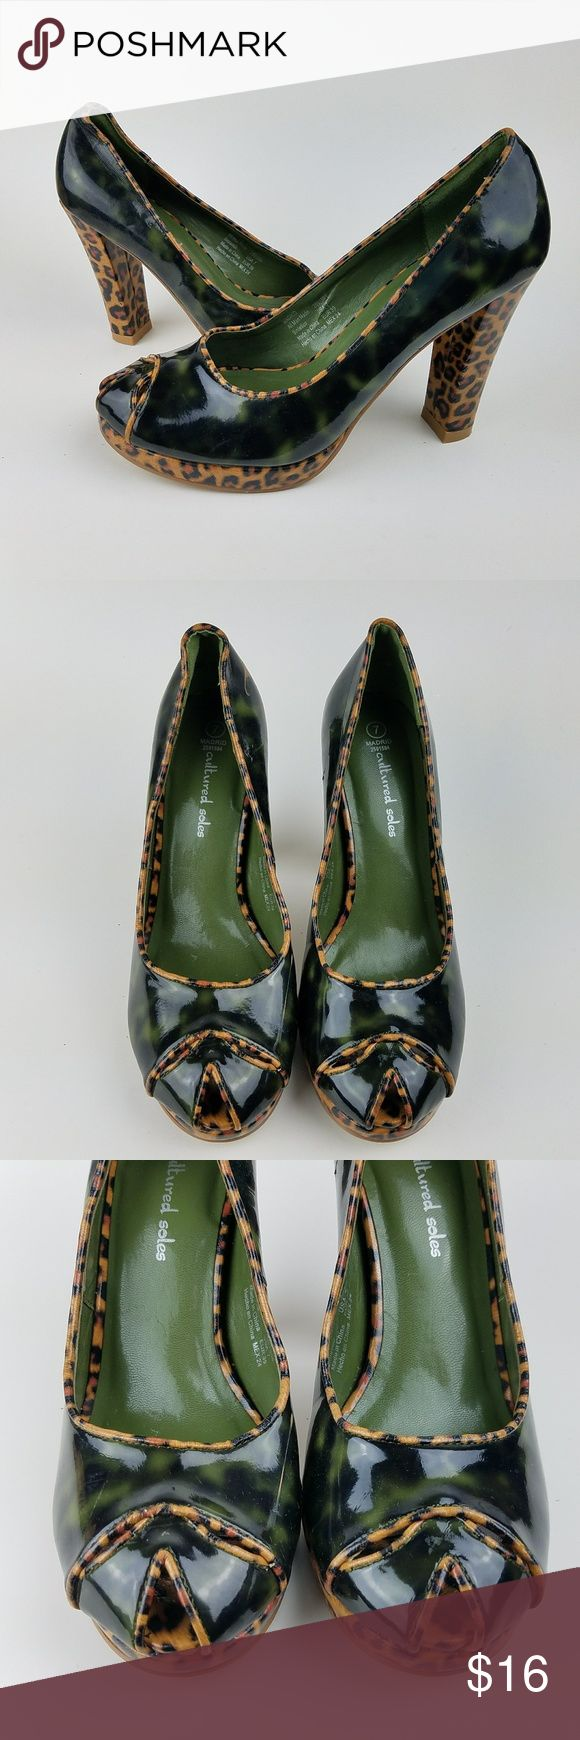 """Cultured Soles Green Animal Print Pumps Women's Cultured Soles Pumps Dark Green w/ Leopard Print Women's size 7 4"""" Heel Shoes have what appears to be paint on back of right shoe. Overall in great condition otherwise.  SE8-8 Cultured Soles Shoes Heels"""